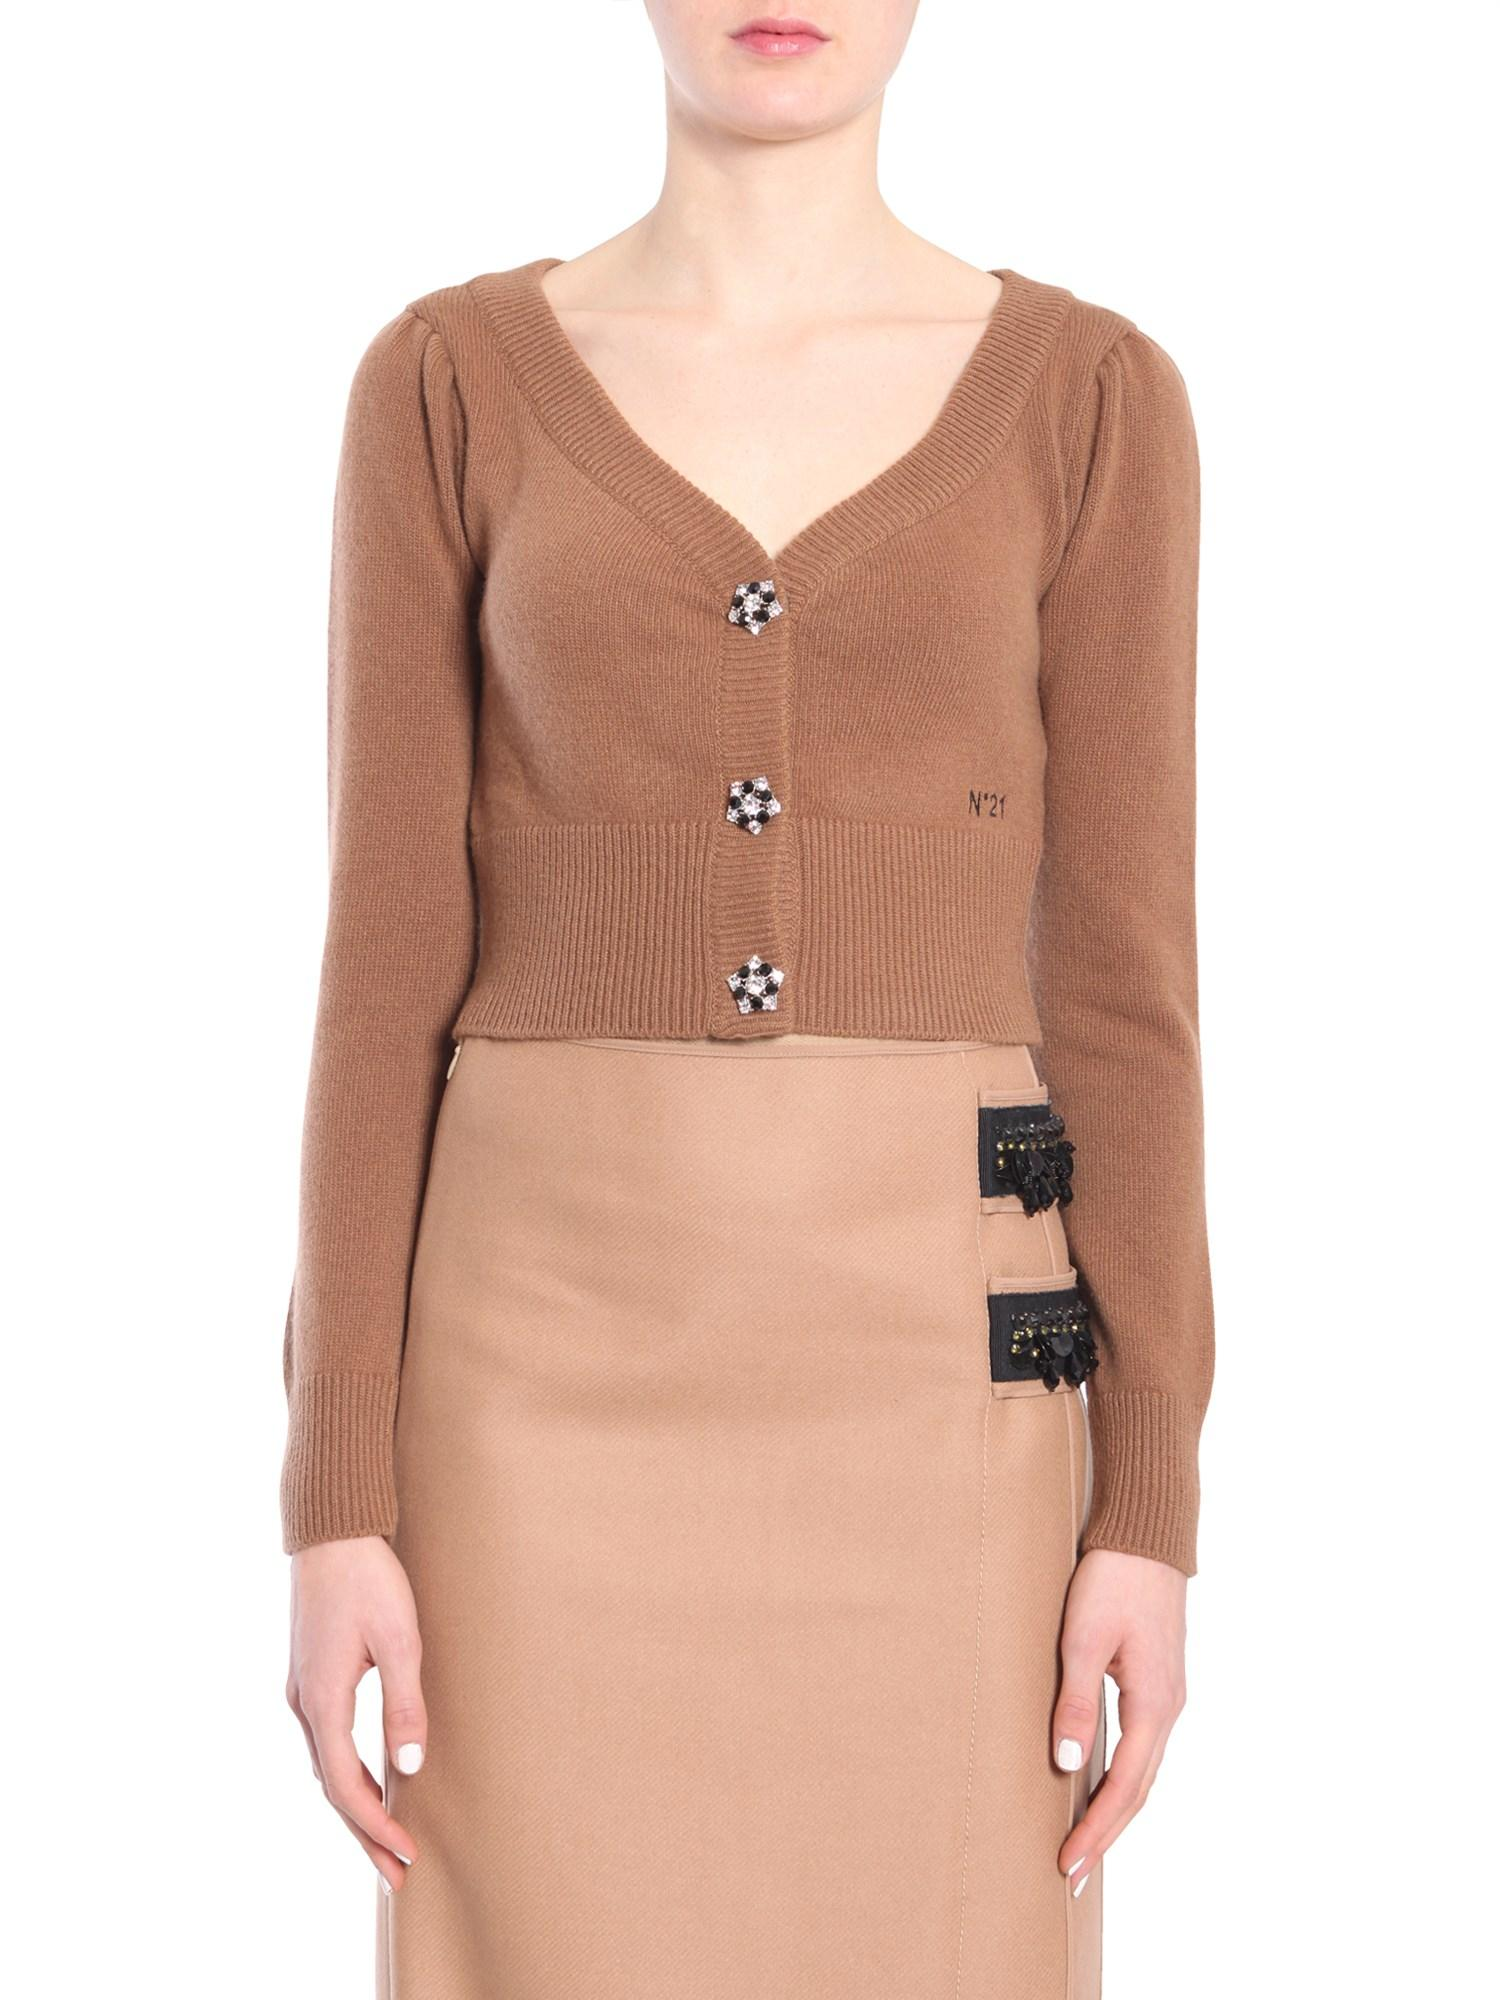 N°21 Nº21 Cropped Embellished Button Cardigan - Brown